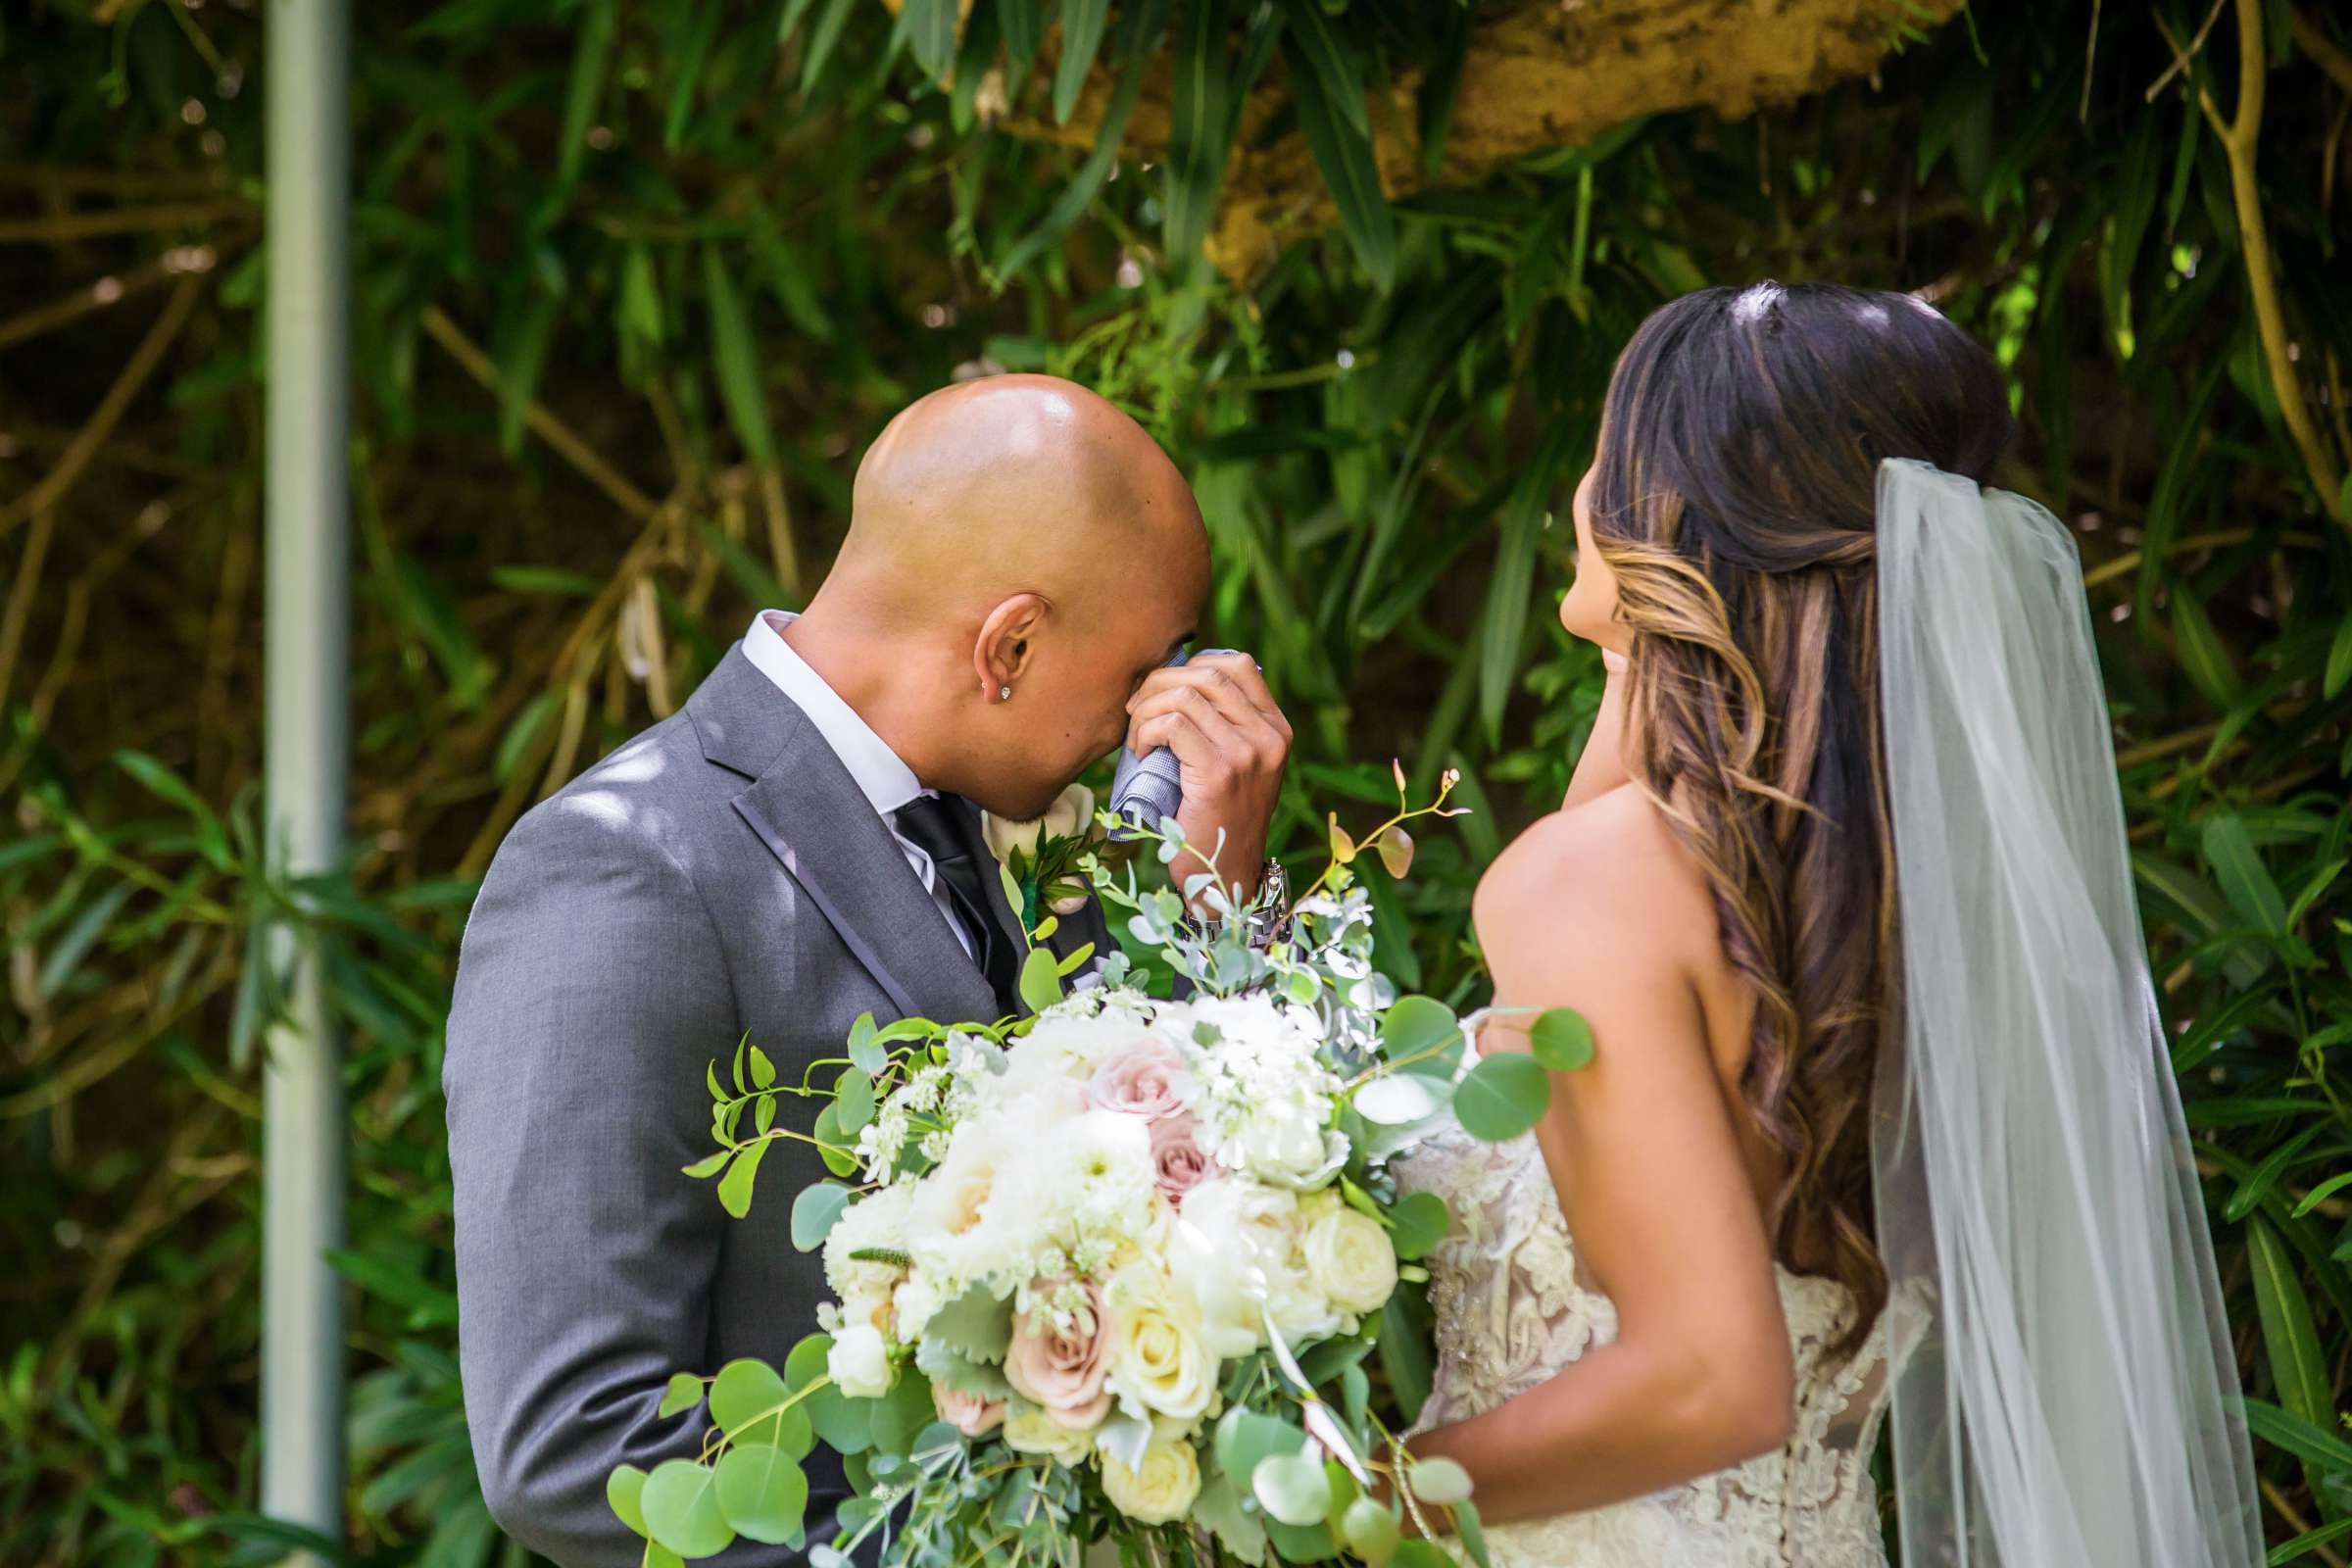 Scripps Seaside Forum Wedding coordinated by Lavish Weddings, Cindy and Justin Wedding Photo #381802 by True Photography